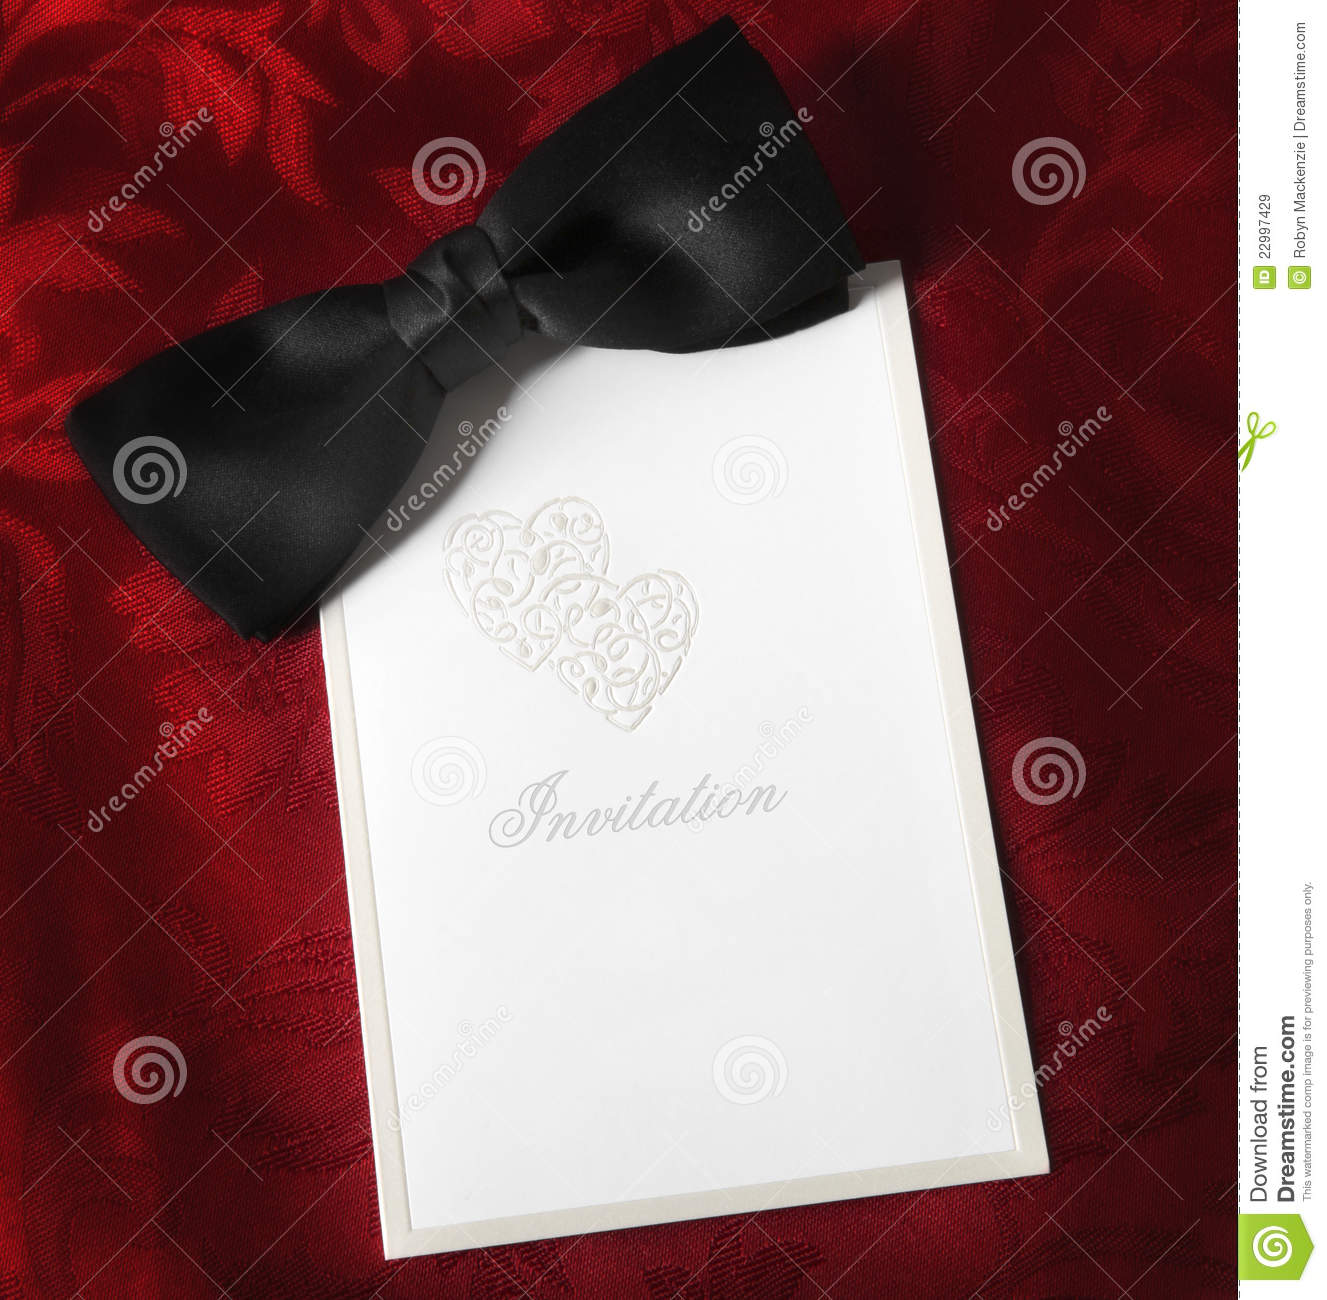 Black Tie Invitation stock image. Image of silk, blank ...